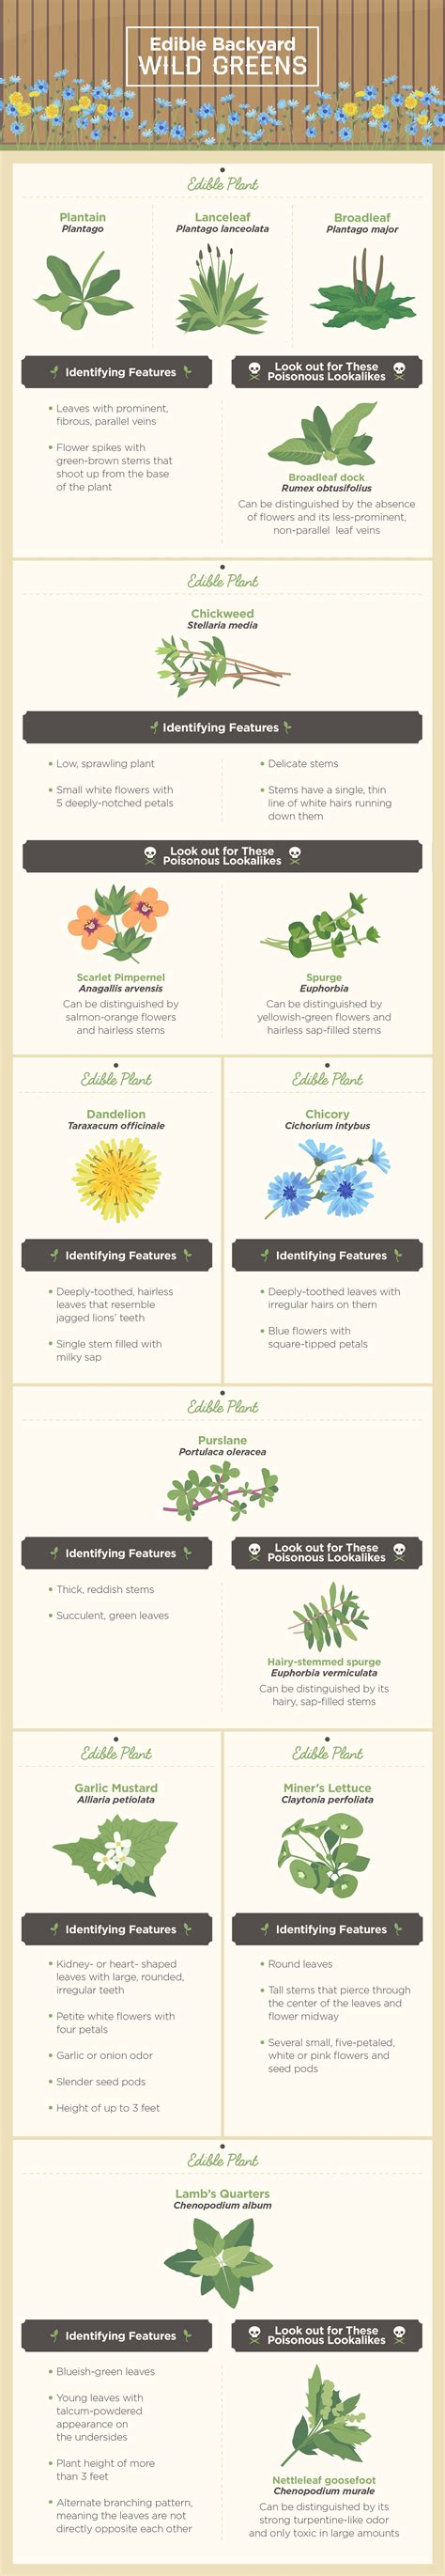 edible plants in your backyard backyard edibles american preppers network american